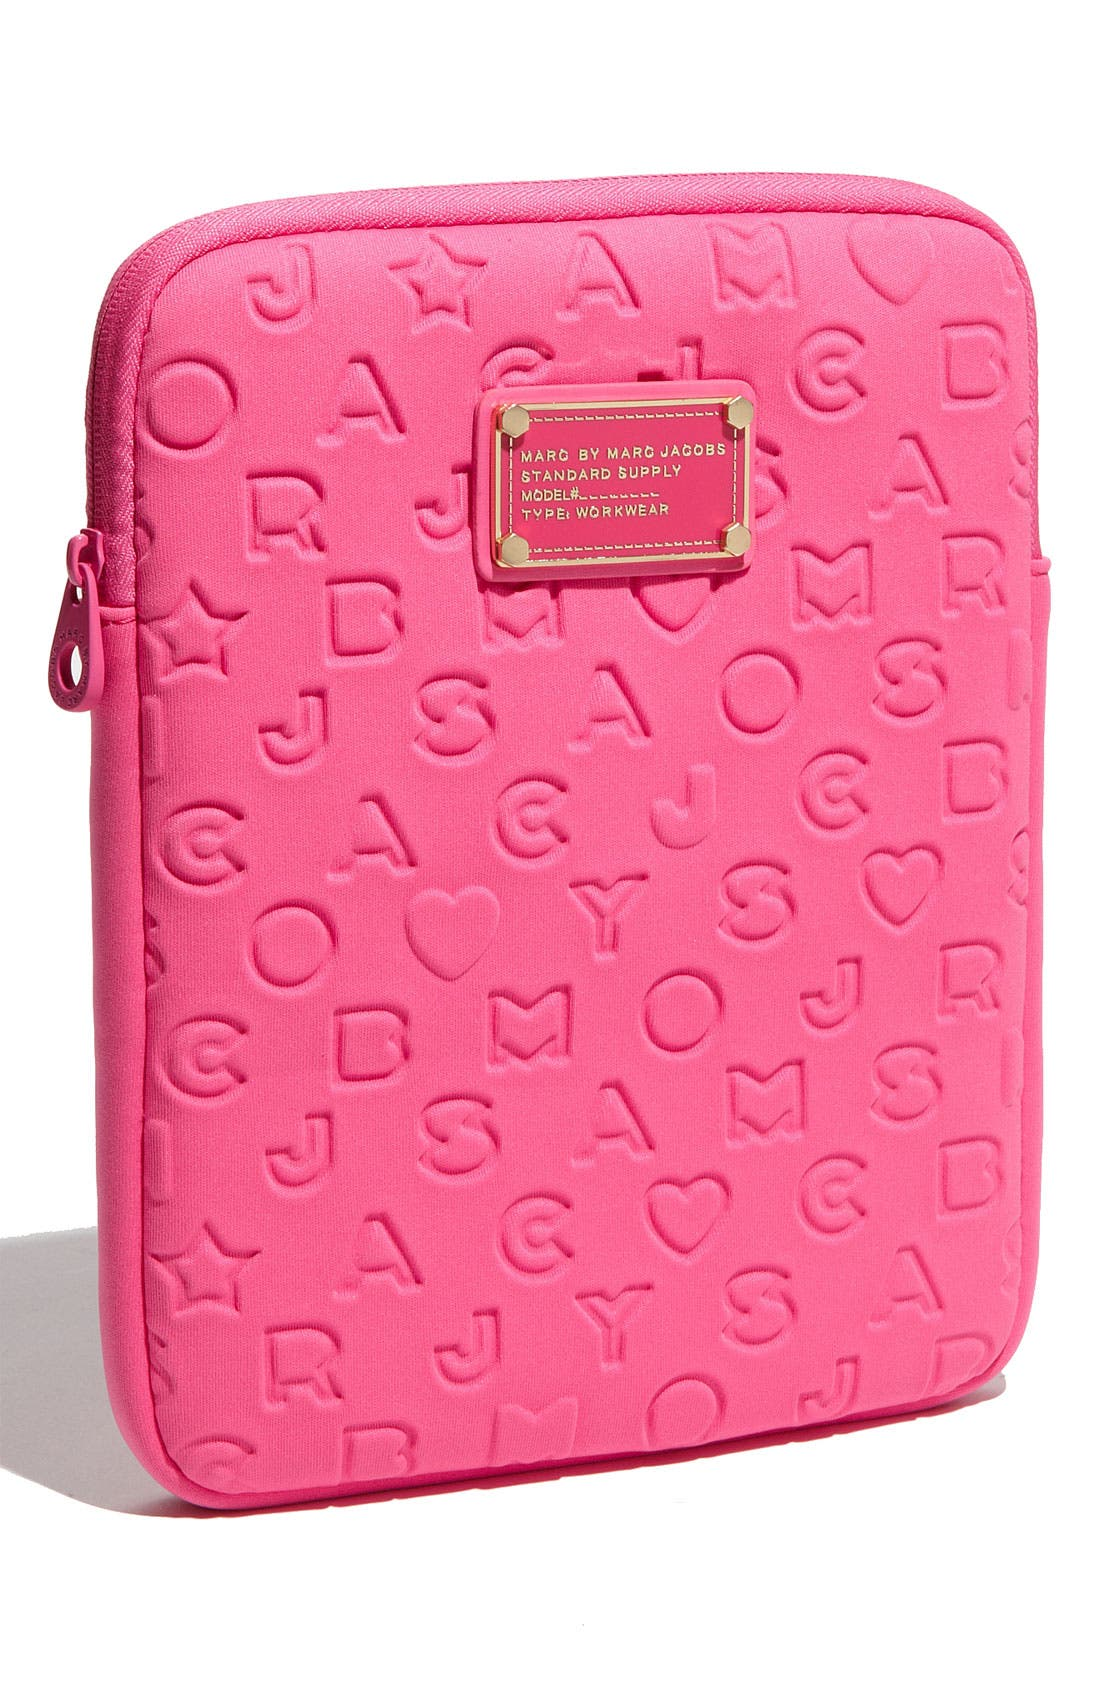 Main Image - MARC BY MARC JACOBS 'Stardust' iPad Case